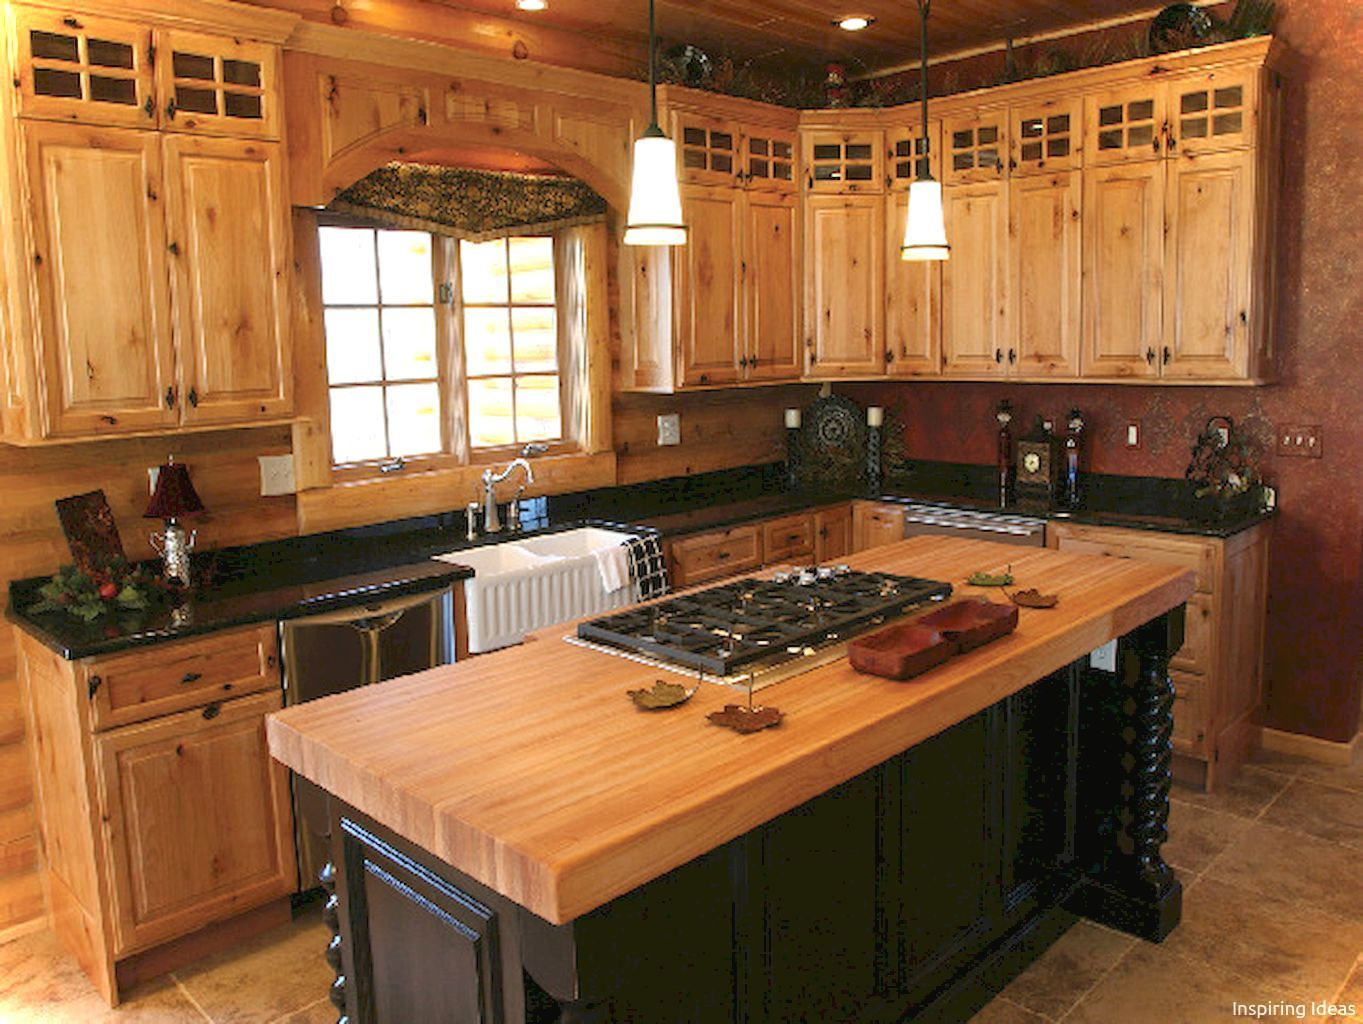 Room A Holic All Inspiring Ideas Are Here Rustic Kitchen Cabinets Farmhouse Style Kitchen Cabinets Kitchen Cabinet Styles